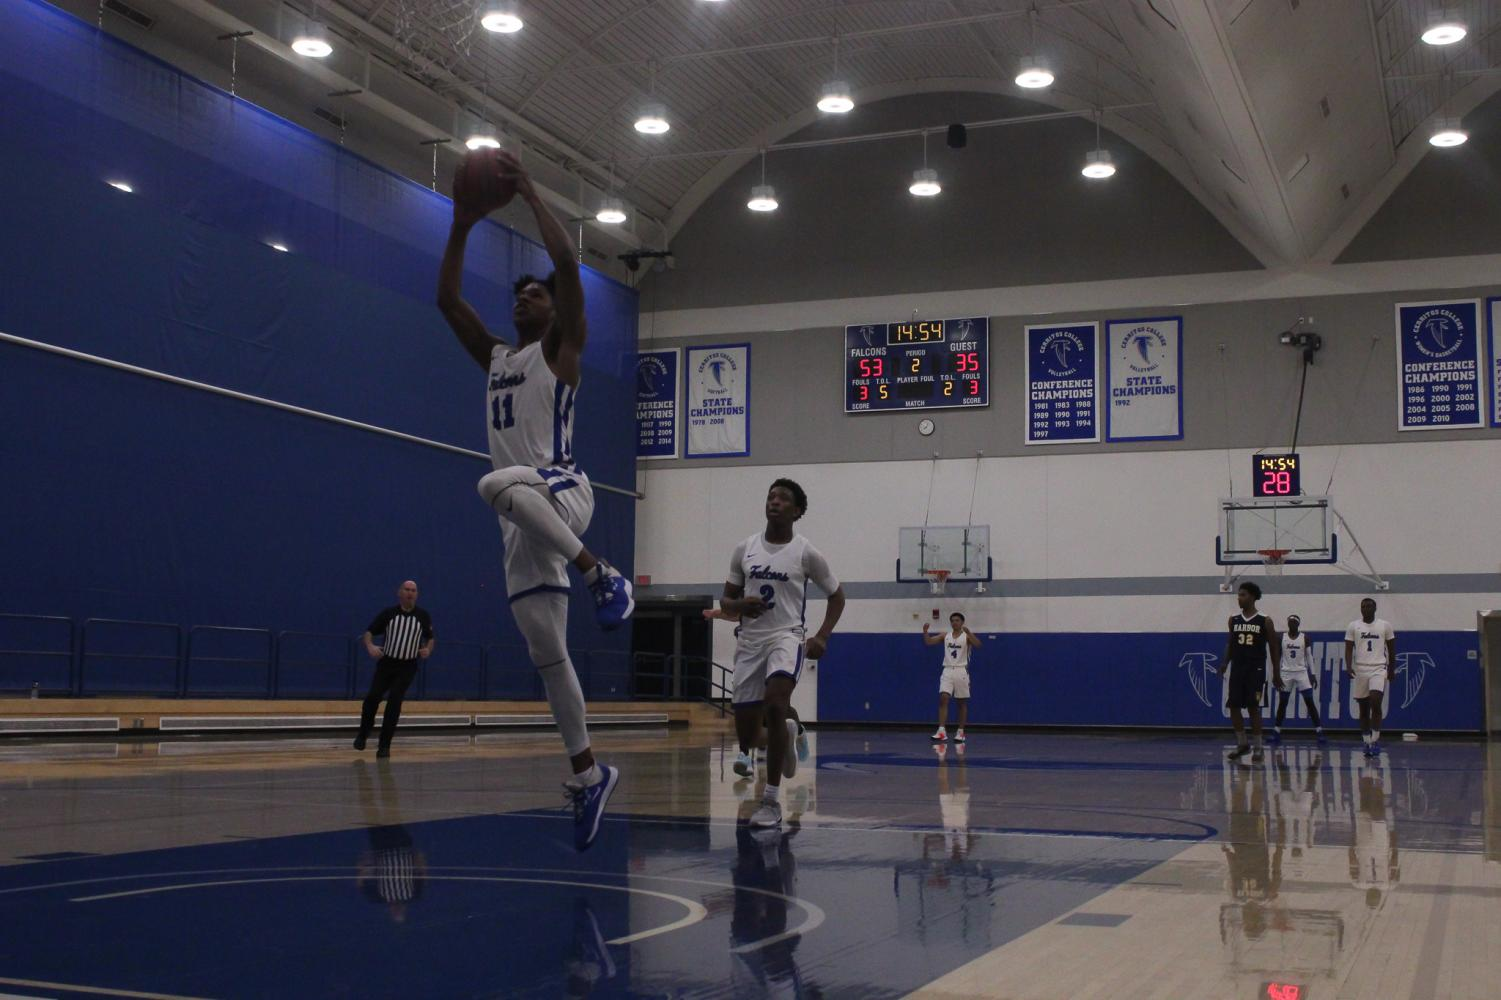 Falcons forward No. 11, Jaishon Forte, steals the ball from a Cougar player and dunks it at the end of the play. Cerritos men's basketball played LA Harbor college on Feb.7, 2020. Photo credit: Keanu Ruffo